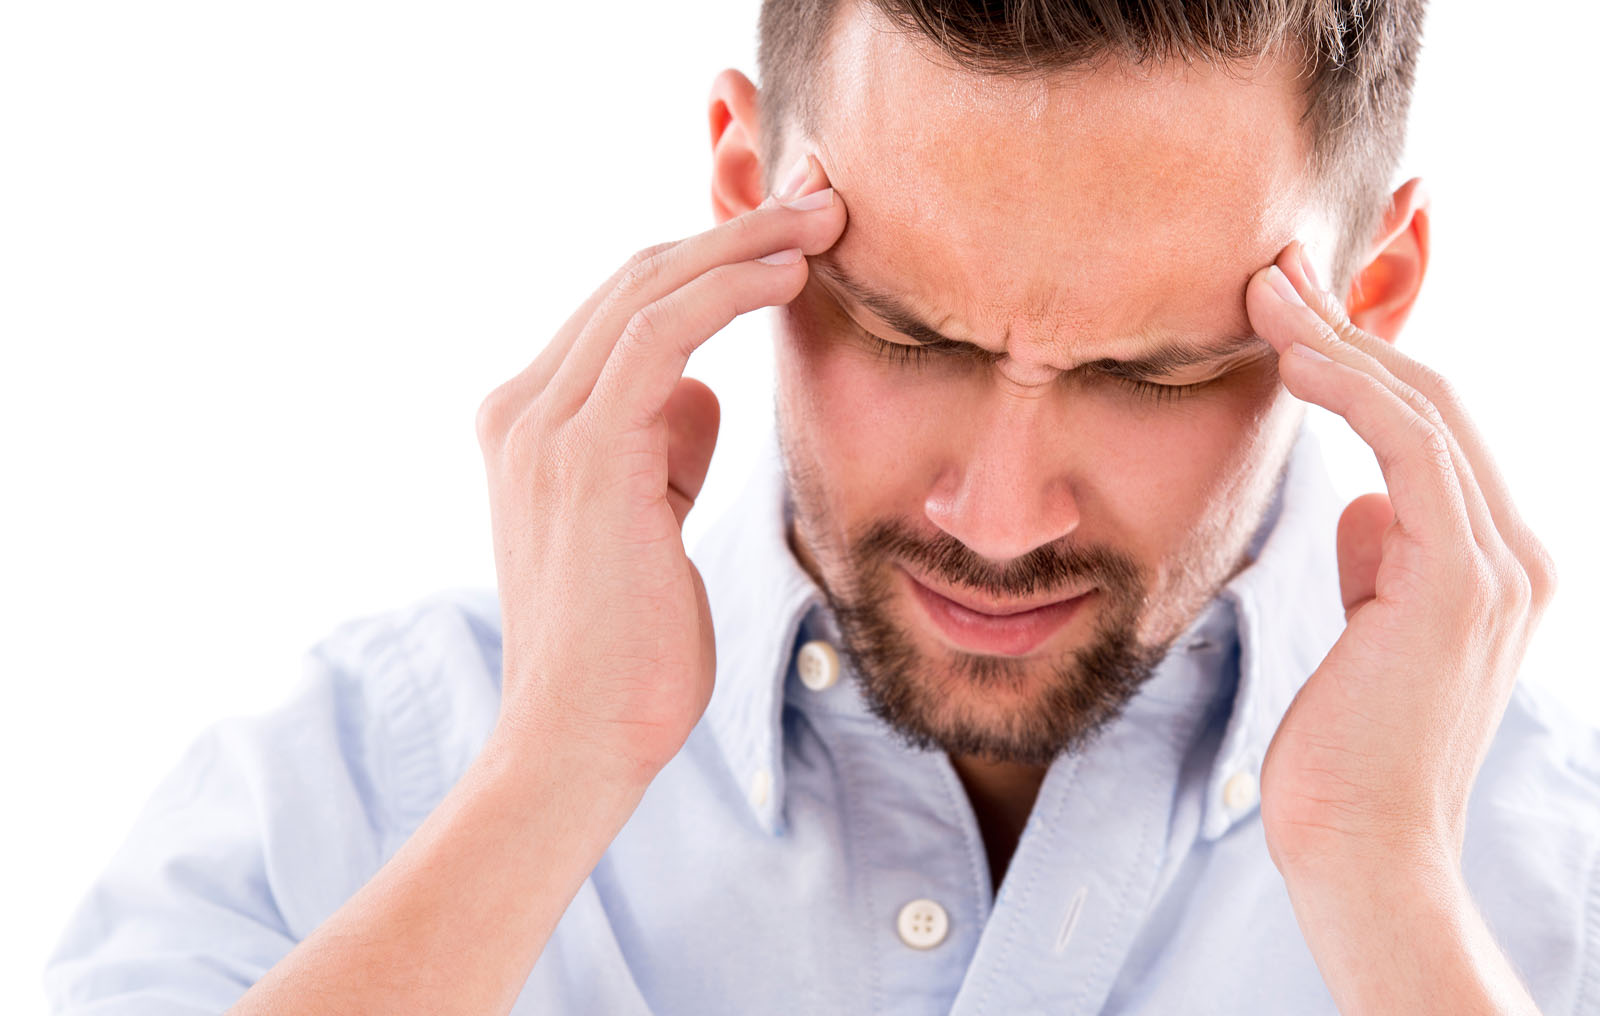 man suffering from a massive headache